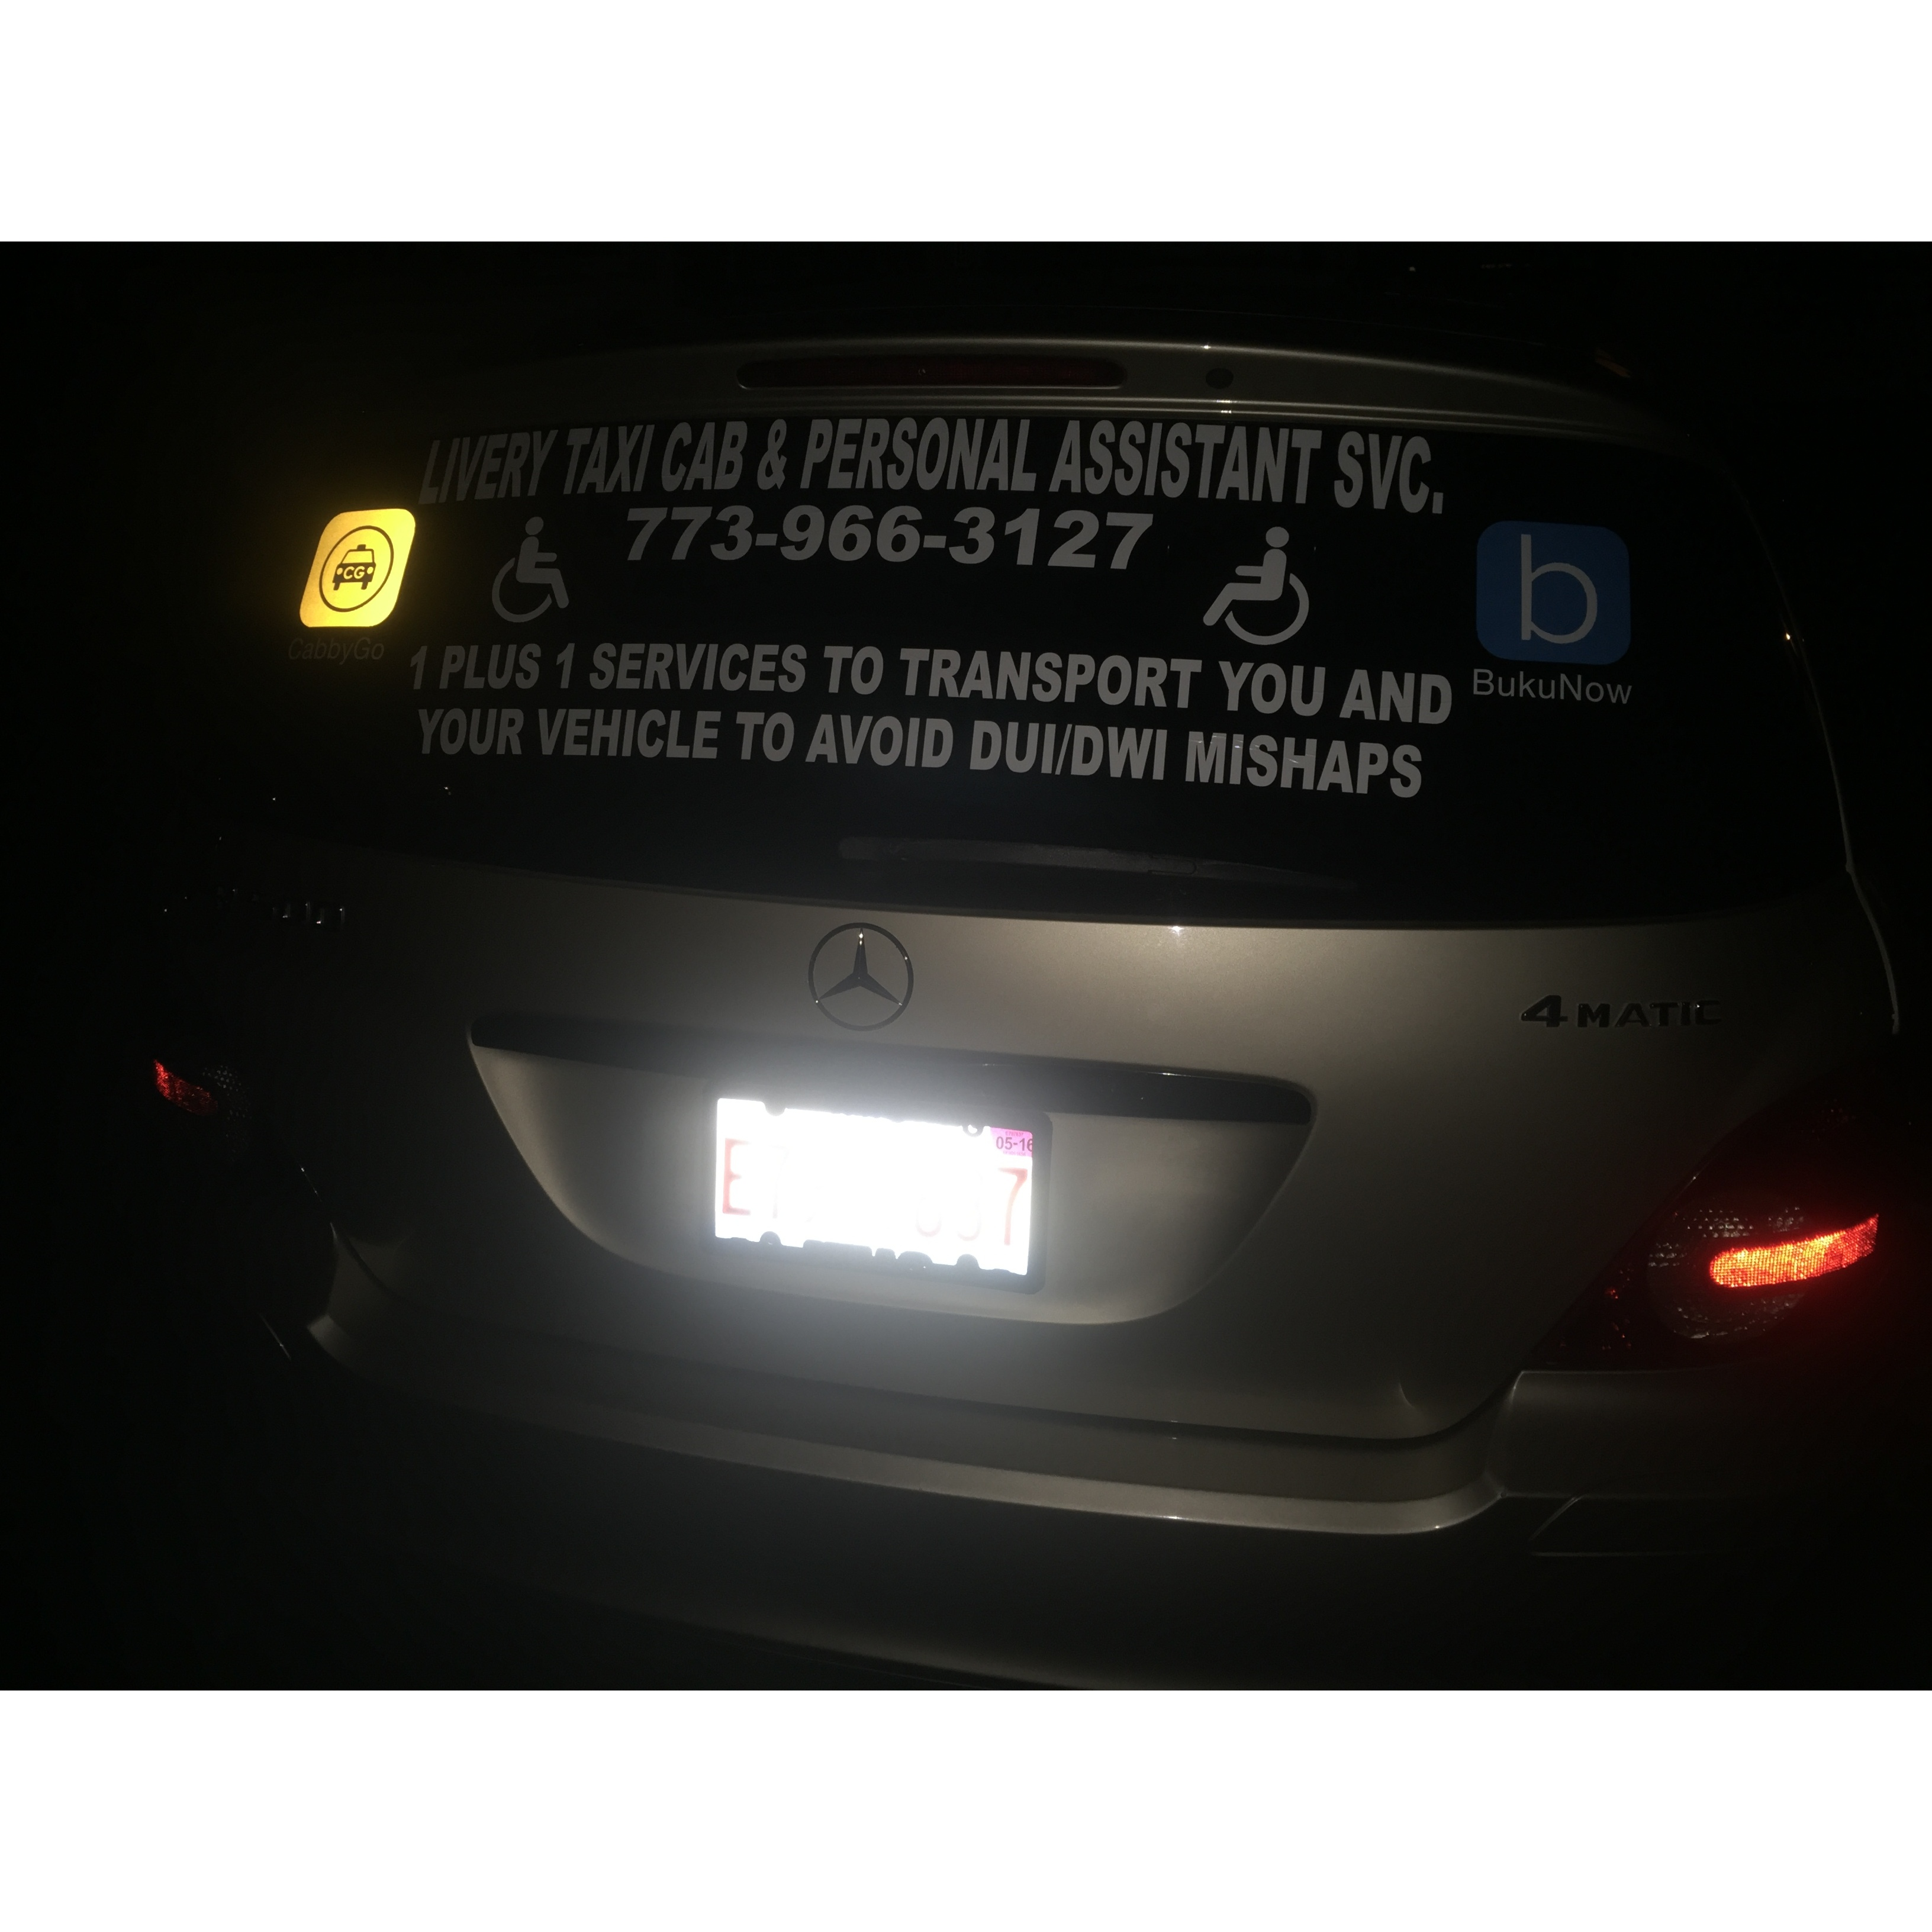 Livery Taxi Cab & Personal Assistant Svc.